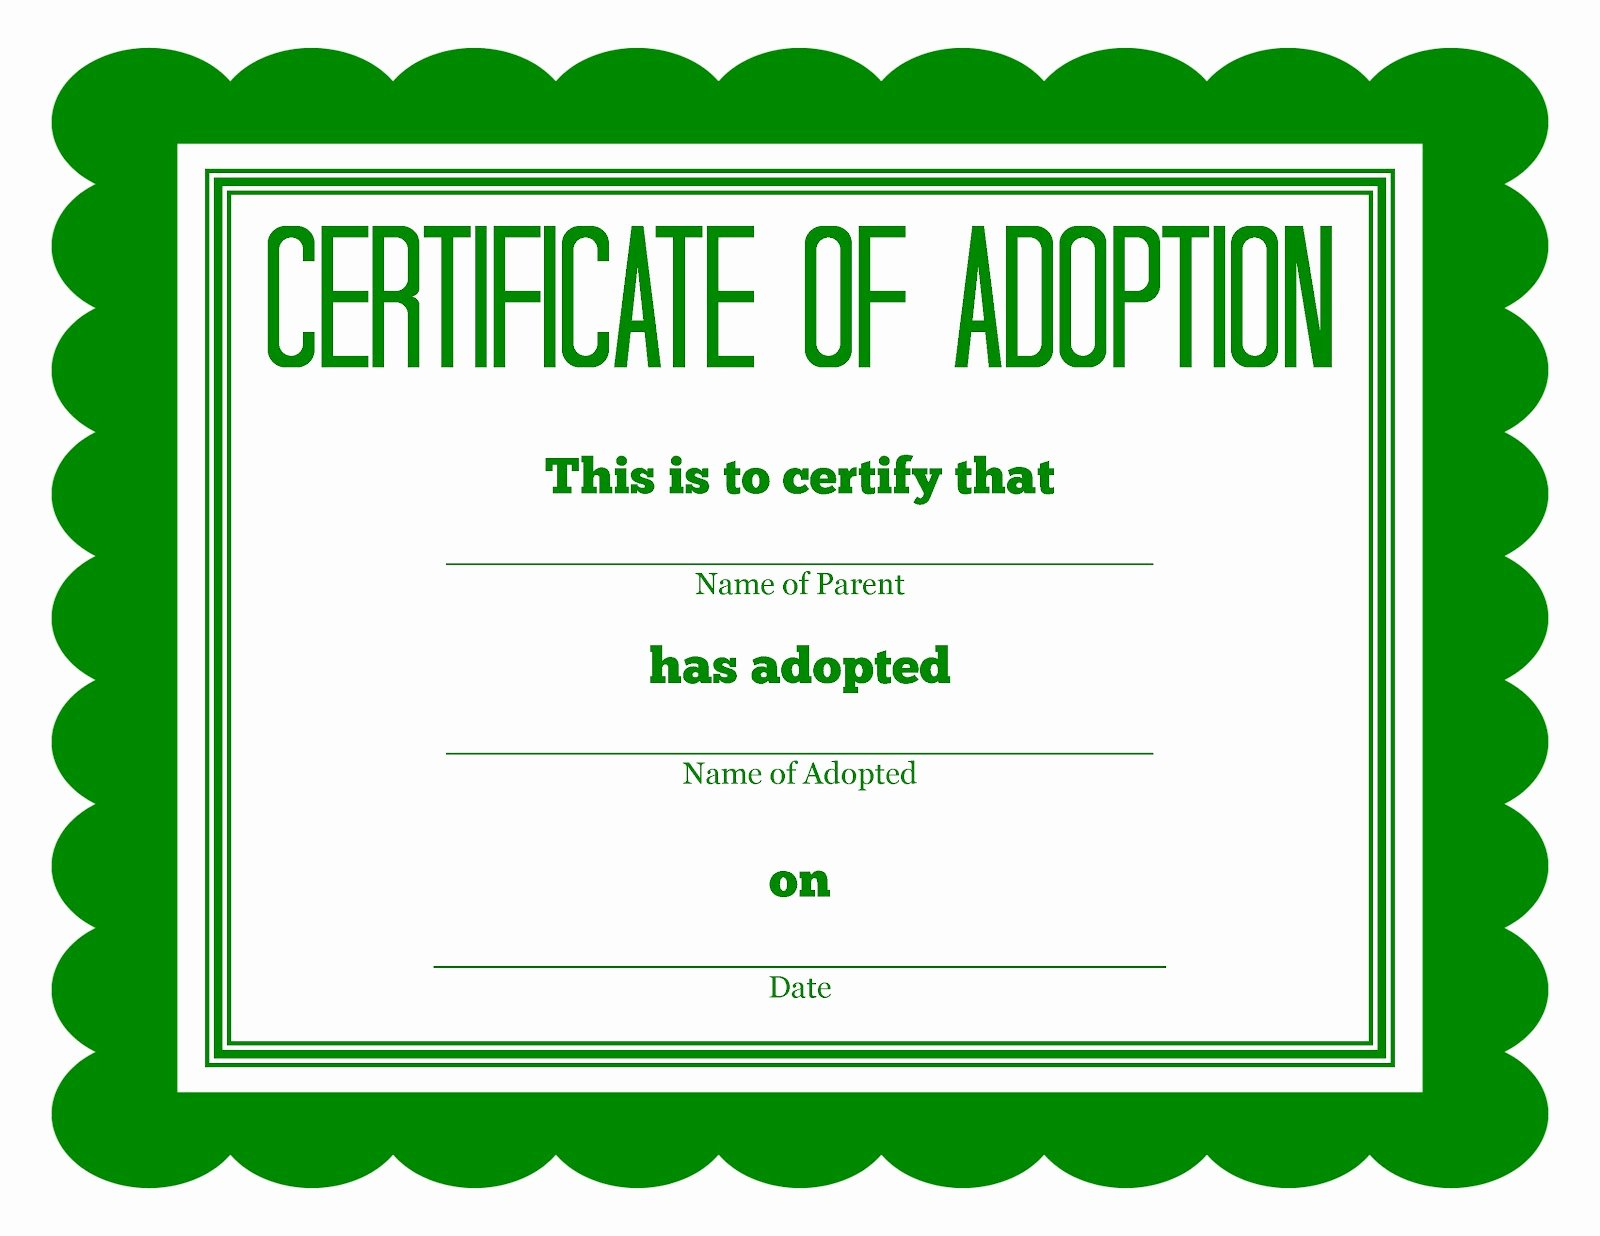 Stuffed Animal Adoption Certificate Template Fresh More Stuffed Animal Adoption Certificates